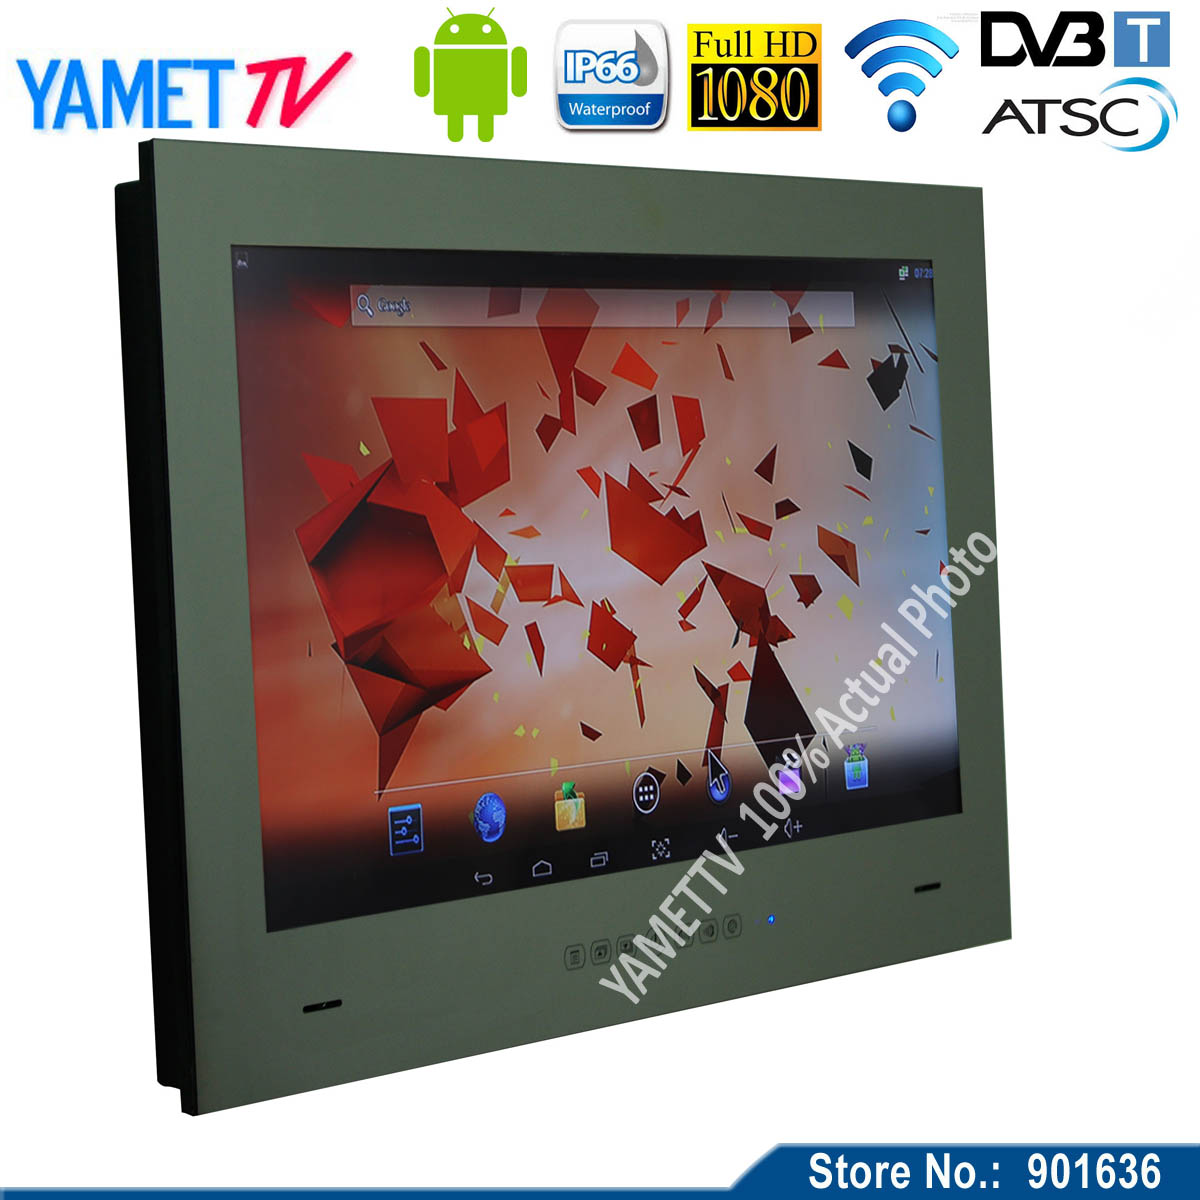 [해외] 15.6 인치? ? ???? ?? 4.2 욕실 TV IP66 방수 거울 TVWIFI HD HDMI/Free shipping 15.6 inch 안드로이드 4.2 bathroom TV IP66 Waterproof Mirror TVWIFI HD HDMI